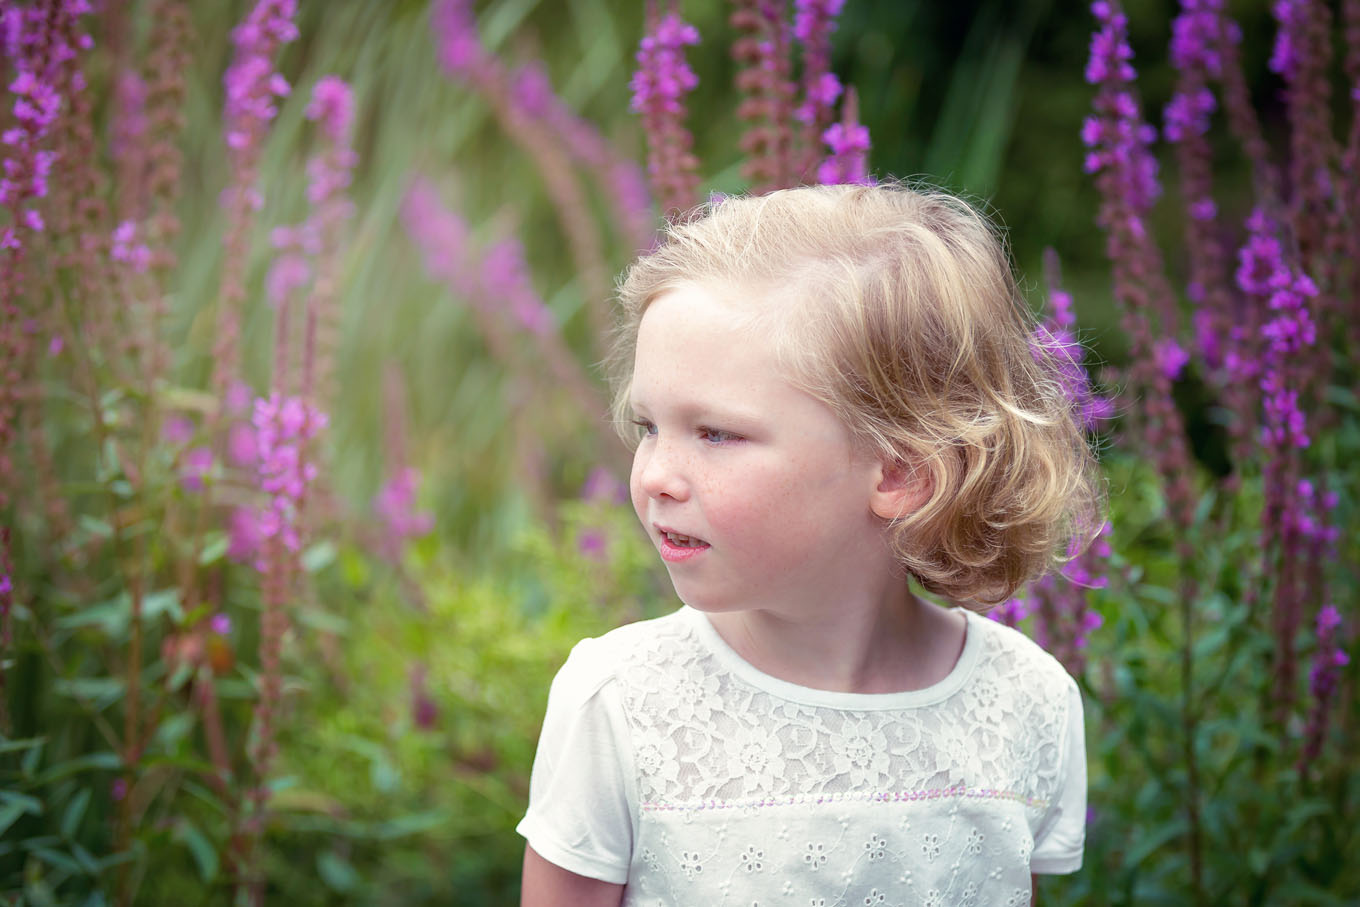 Summer outdoor portrait of a little girl